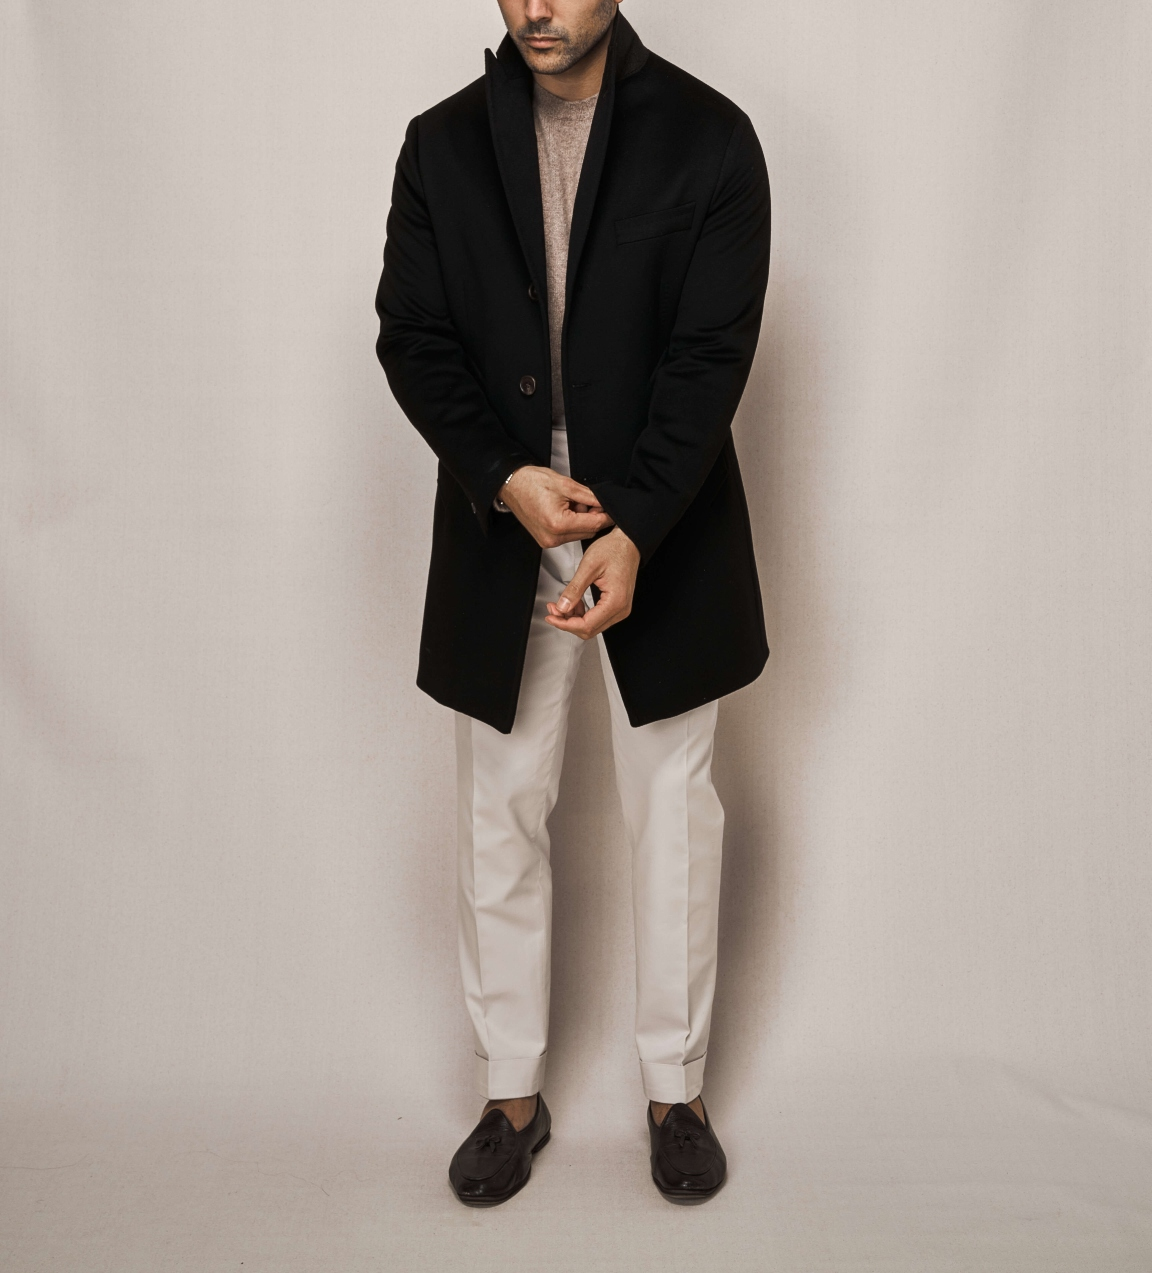 Single Breasted Overcoat | White Cotton Stretch Trouser